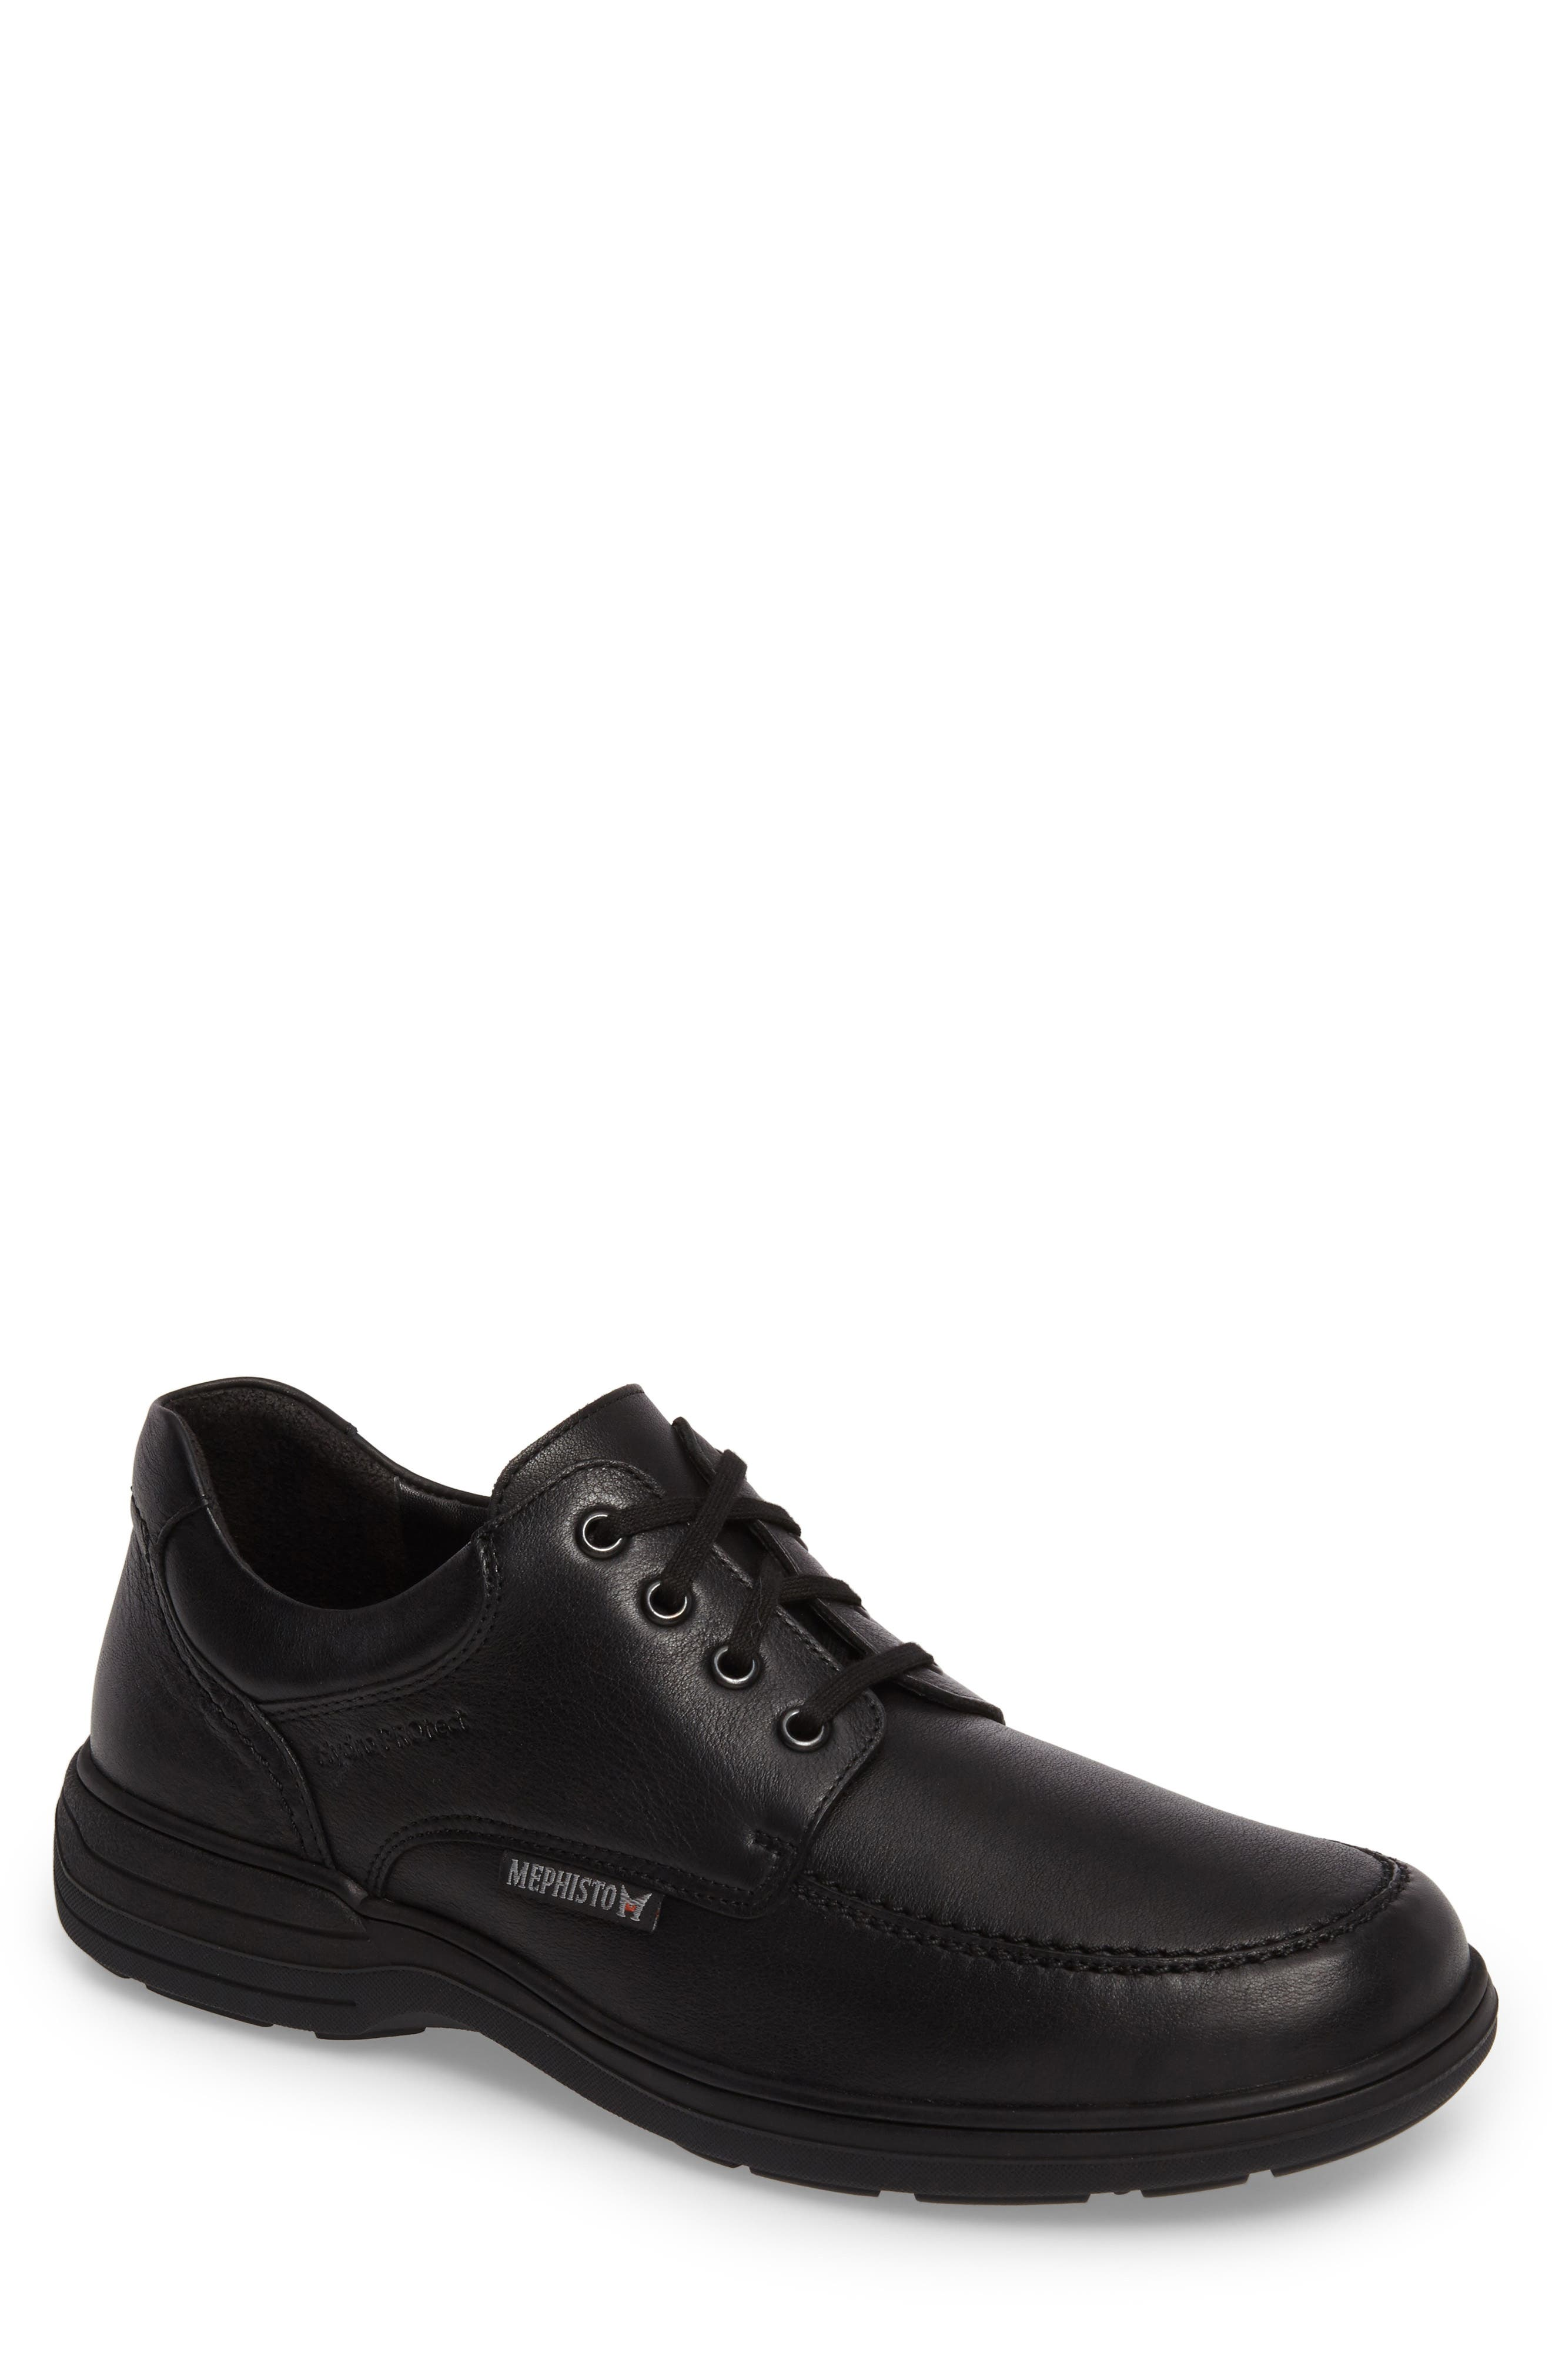 MEPHISTO, Douk HydroProtect Waterproof Moc Toe Derby, Main thumbnail 1, color, BLACK CALFSKIN